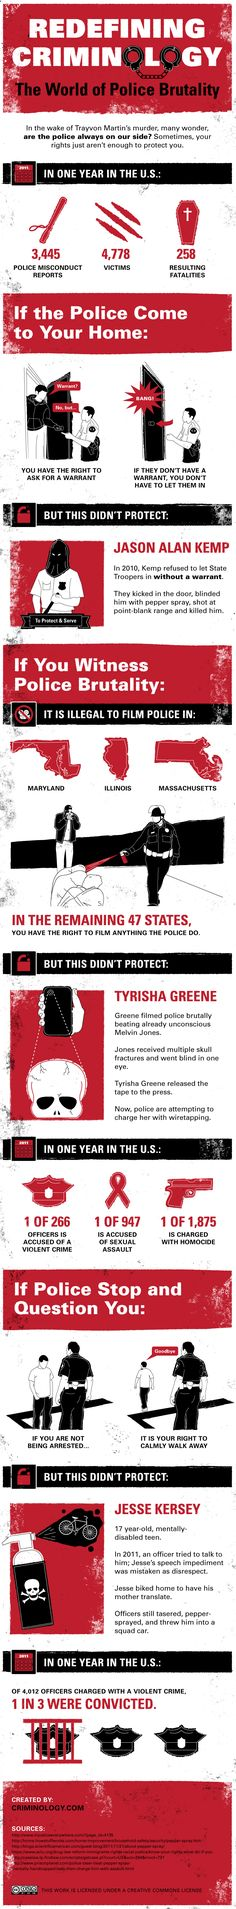 Know Your Rights - Police Brutality Statistics in the US... You can always demand their name and badge number and insist they call their supervisor to the scene if you have any qualms about their ethics.